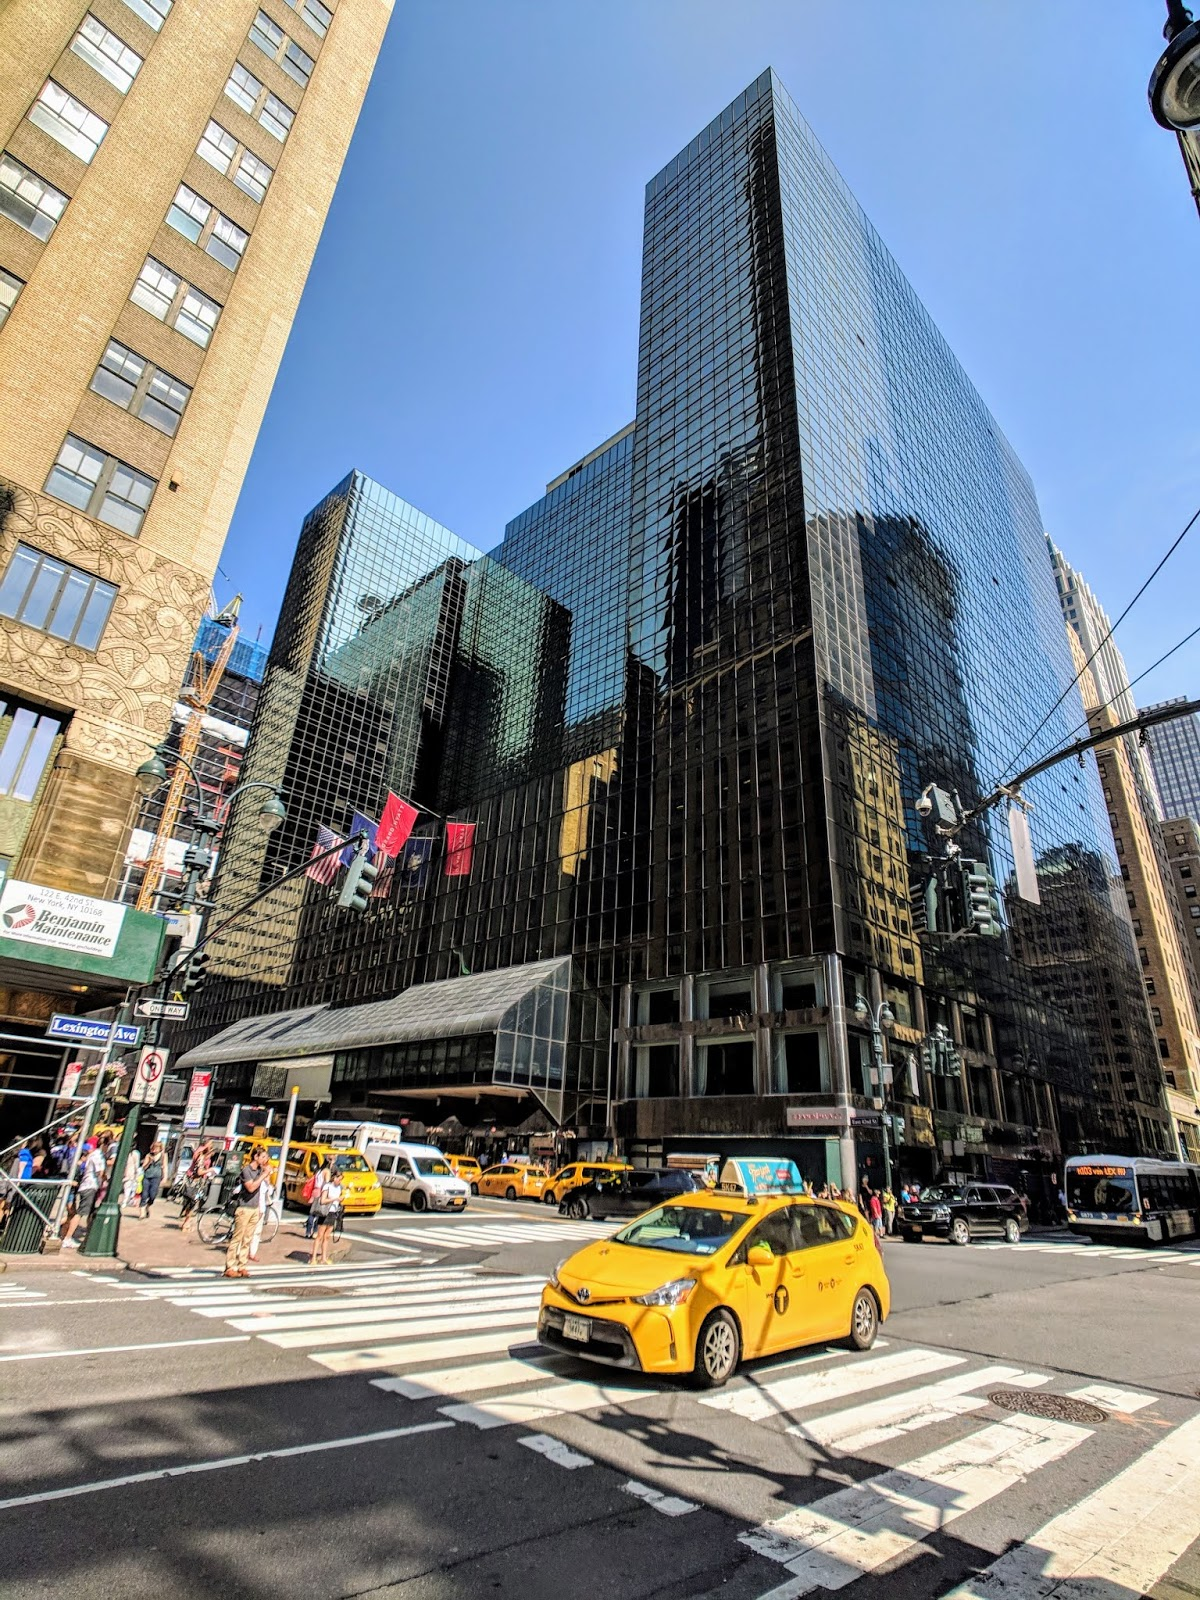 Hotels New York Hotel Cheapest Deal 2020